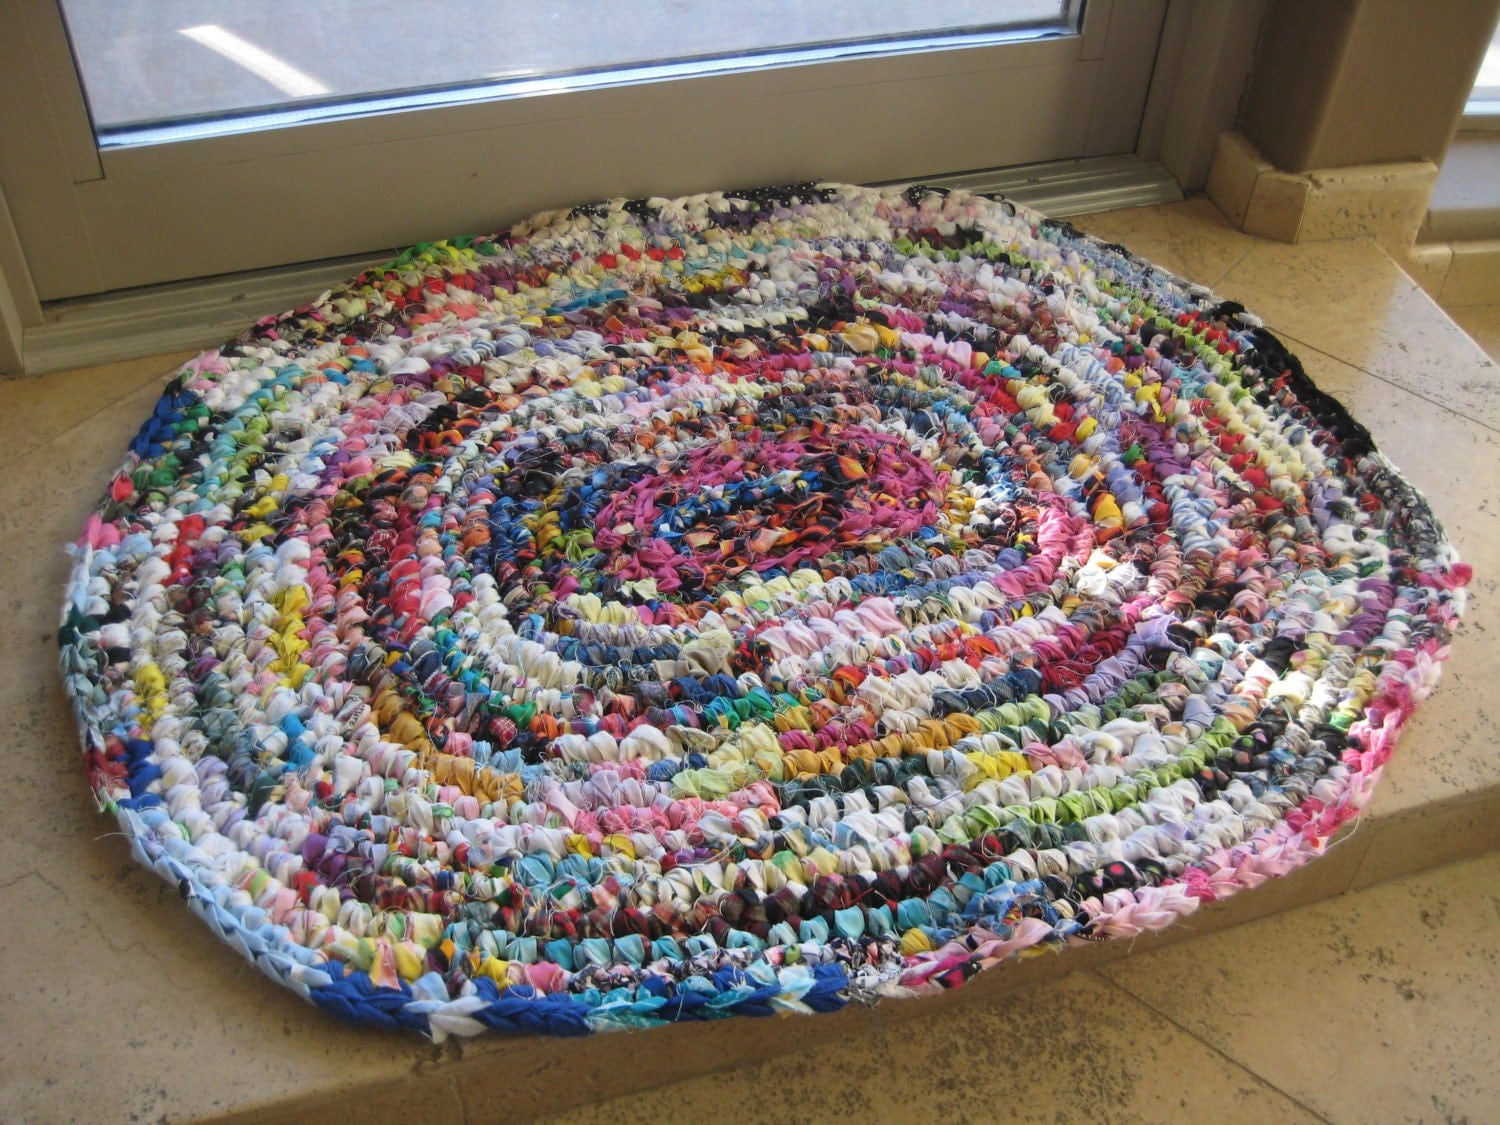 Free Crochet Pattern For Oval Rag Rug : Oval Crochet Rag Rug Multi Color Handmade Cotton by RobinLewis